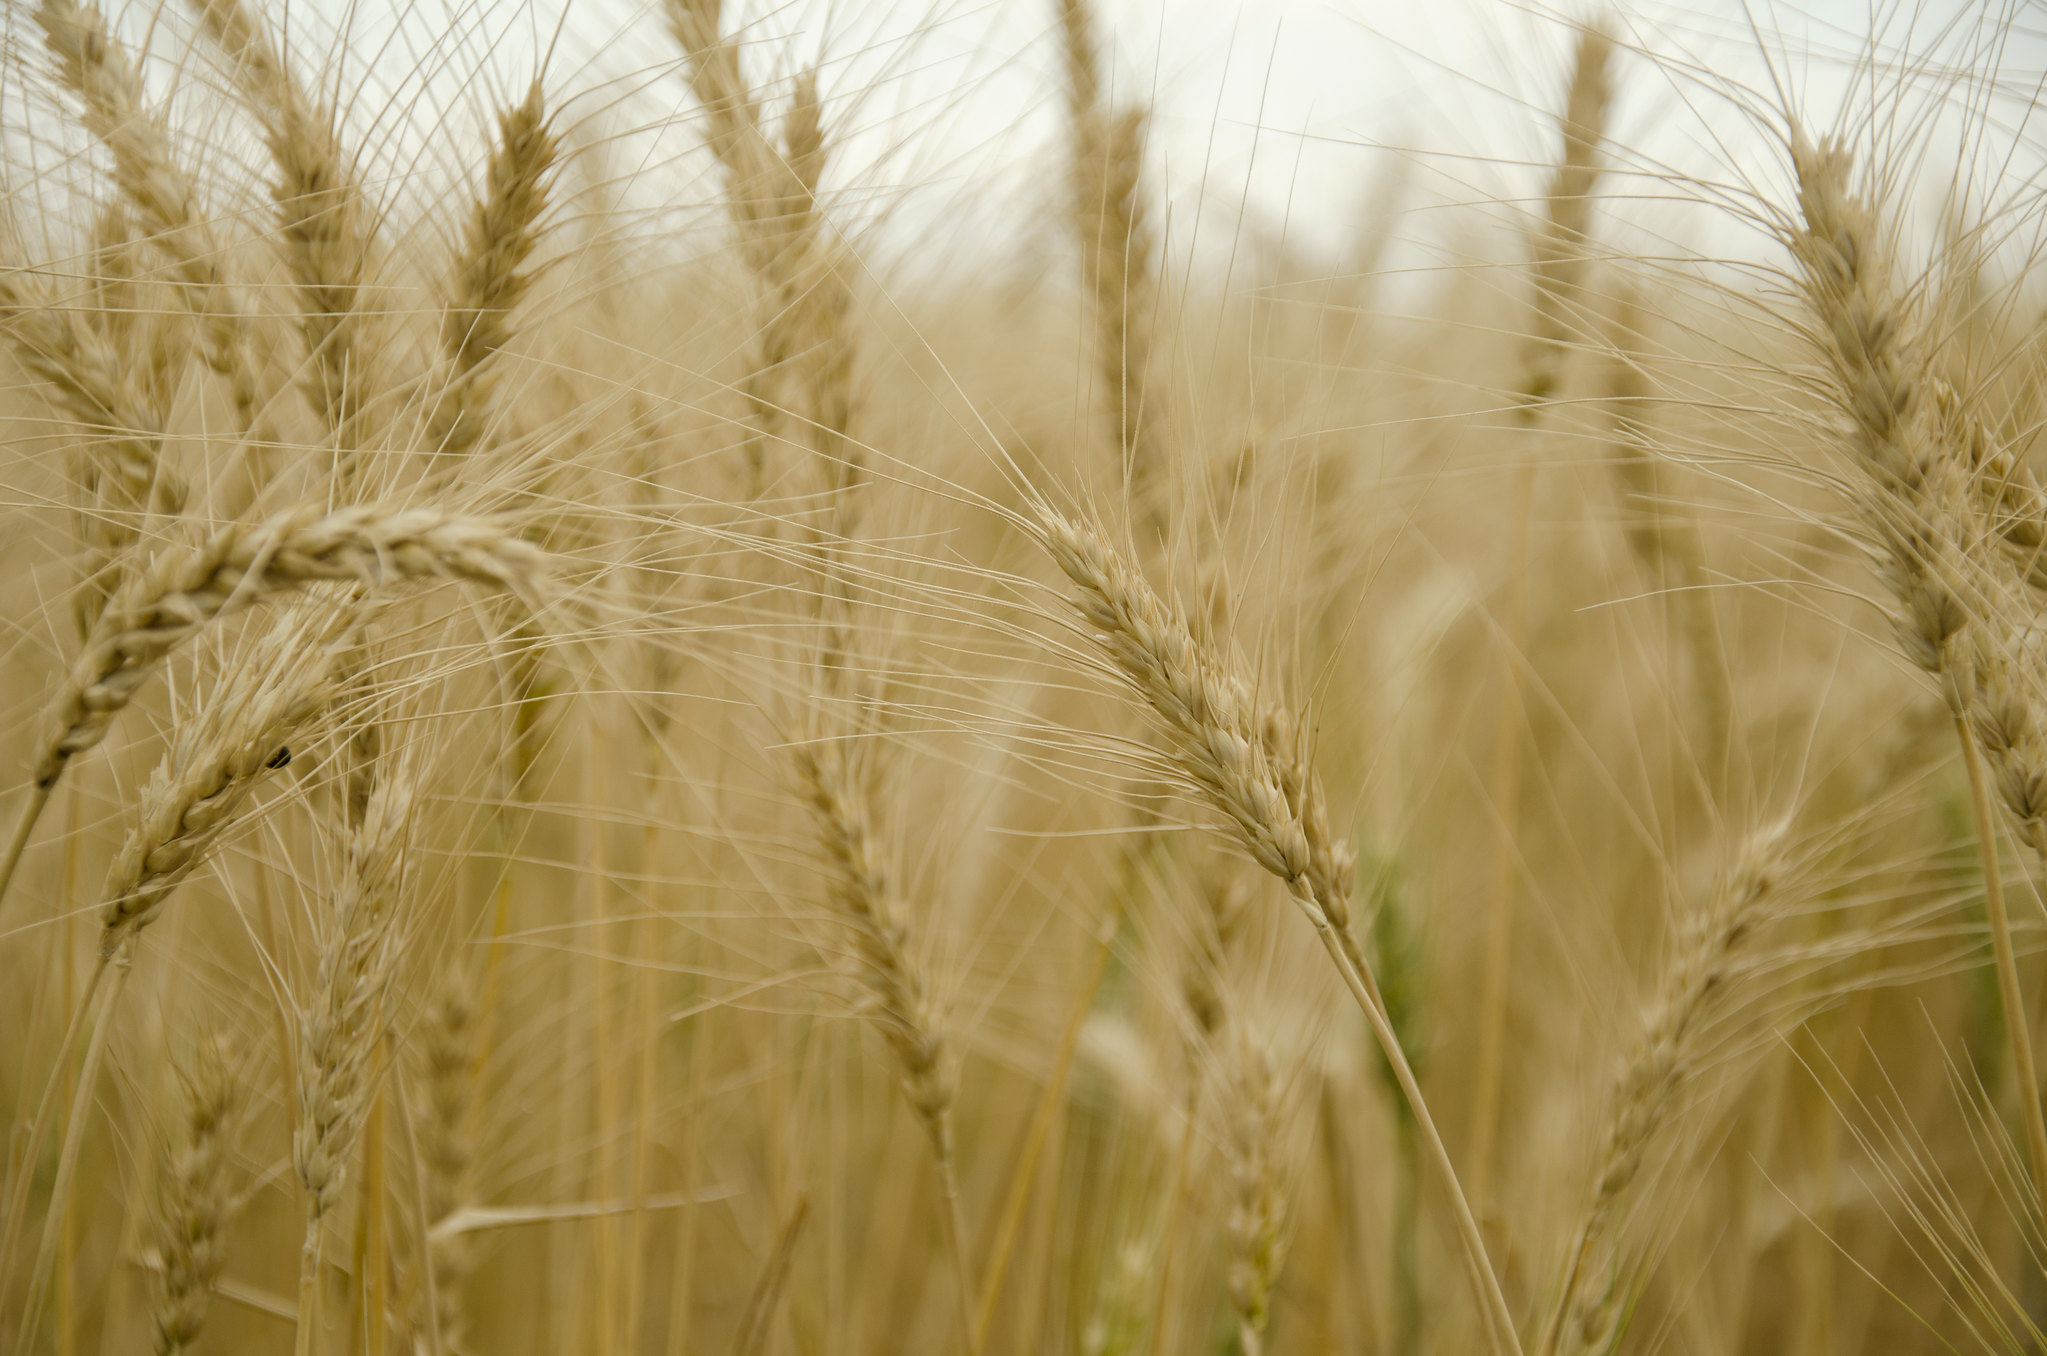 A photograph of strands of wheat.